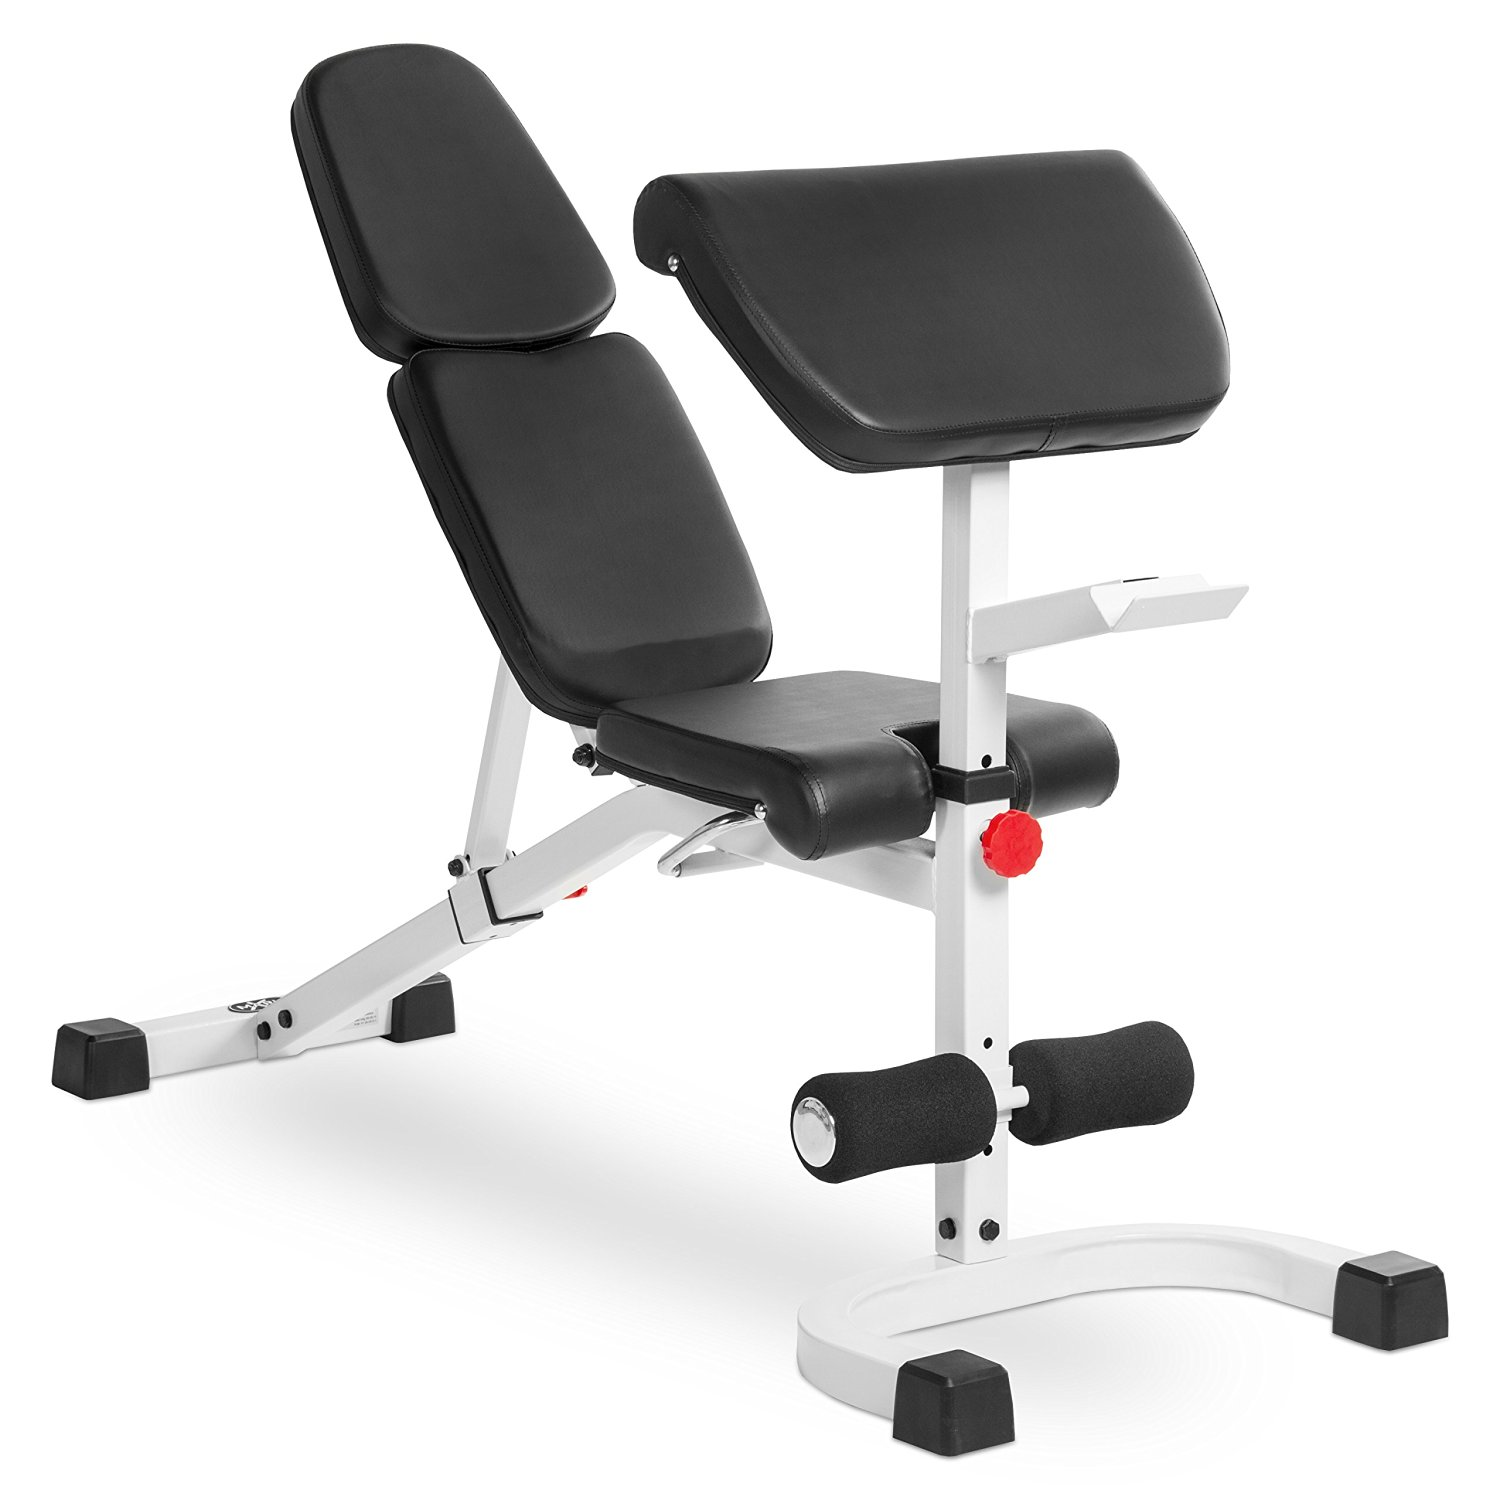 Cheap Flat Incline Decline Weight Bench Find Free Weights Gfid71 Get Quotations Xmark Fid Has 8 Back Pad Adjustments From To Full